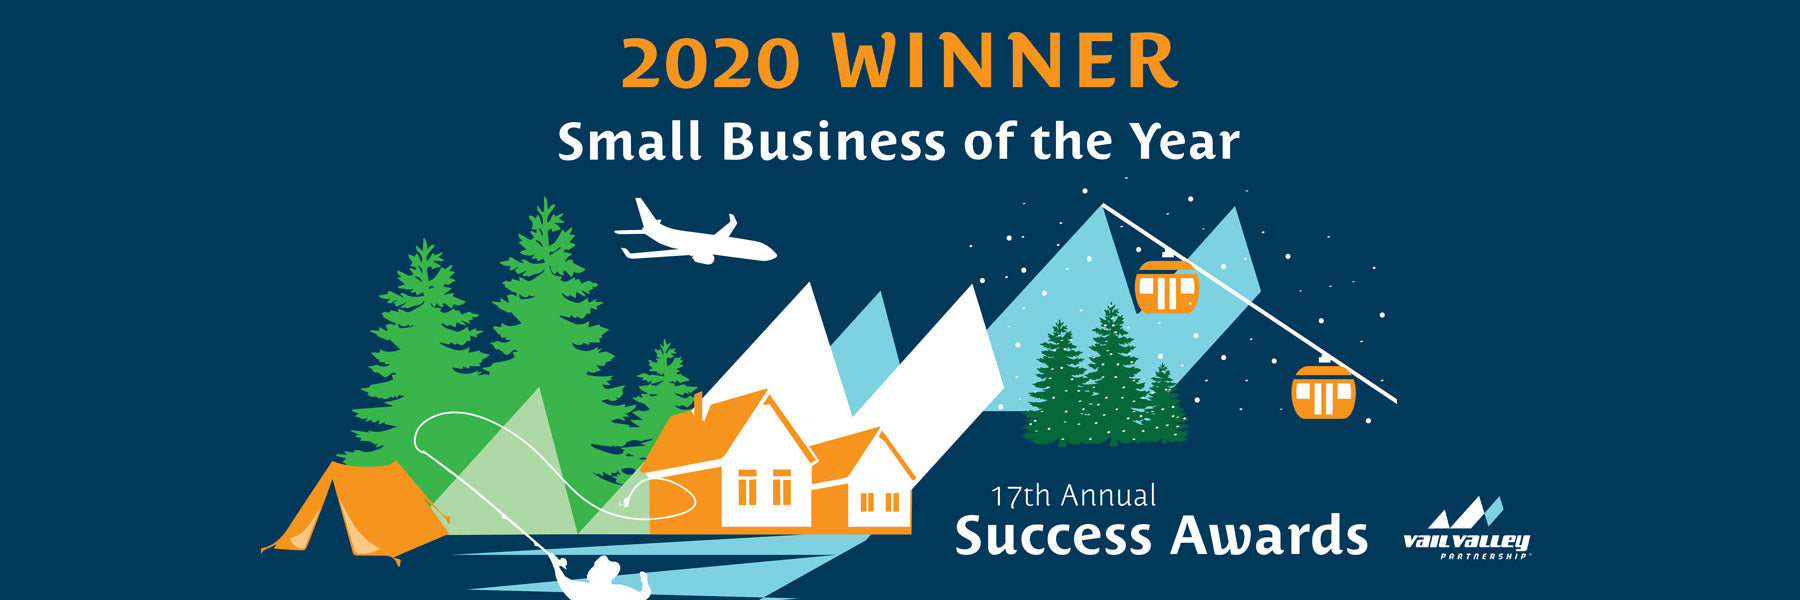 MountainFit - Small business of the year